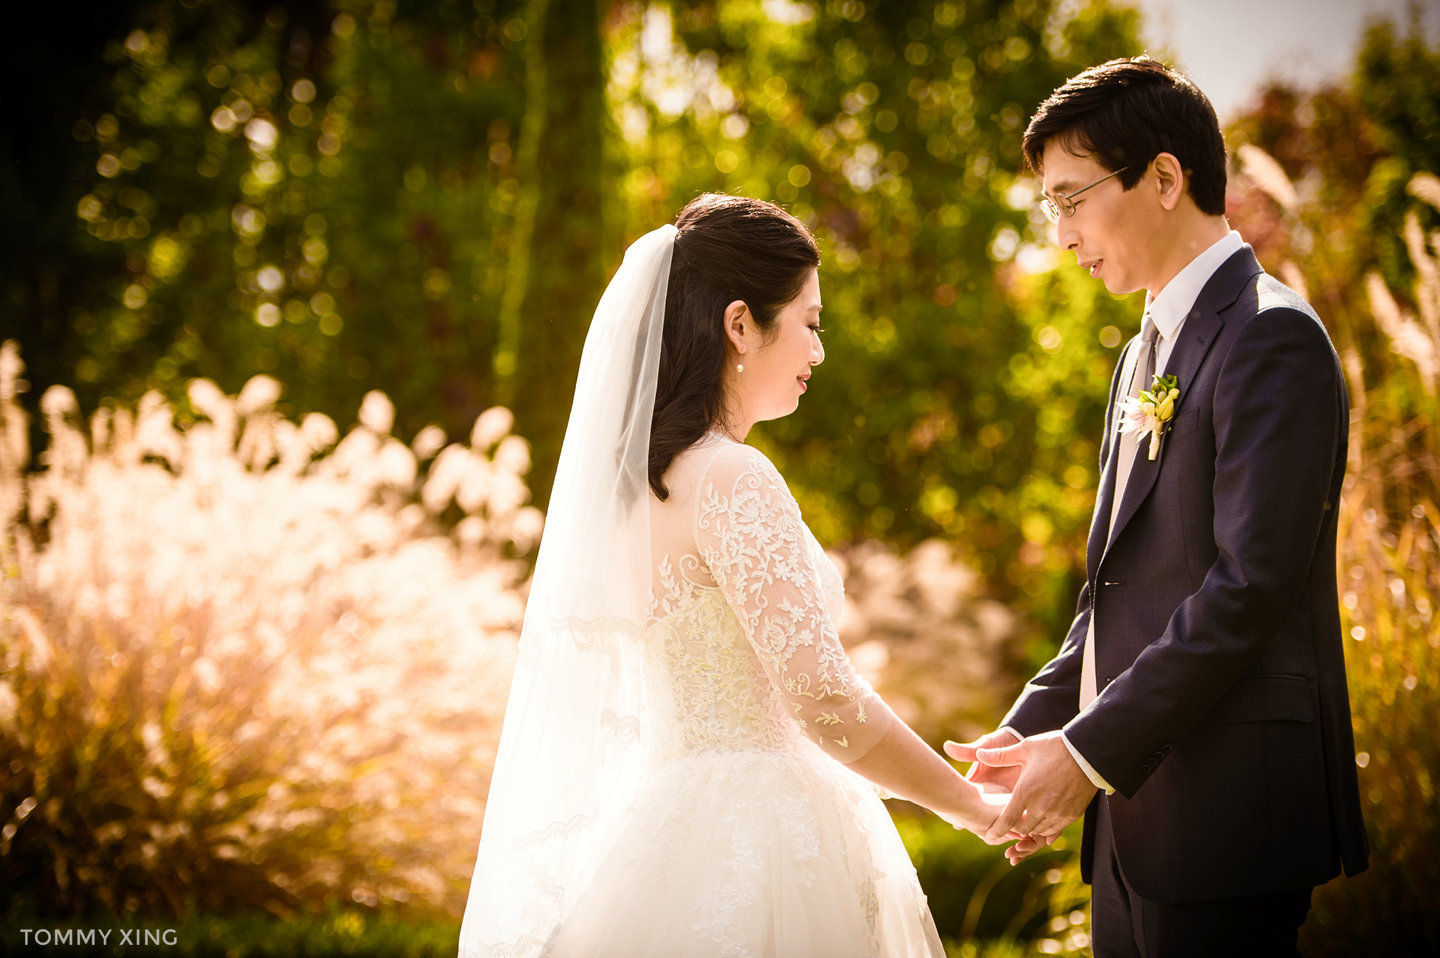 San Francisco Wedding Photography Valley Presbyterian Church WEDDING Tommy Xing Photography 洛杉矶旧金山婚礼婚纱照摄影师038.jpg